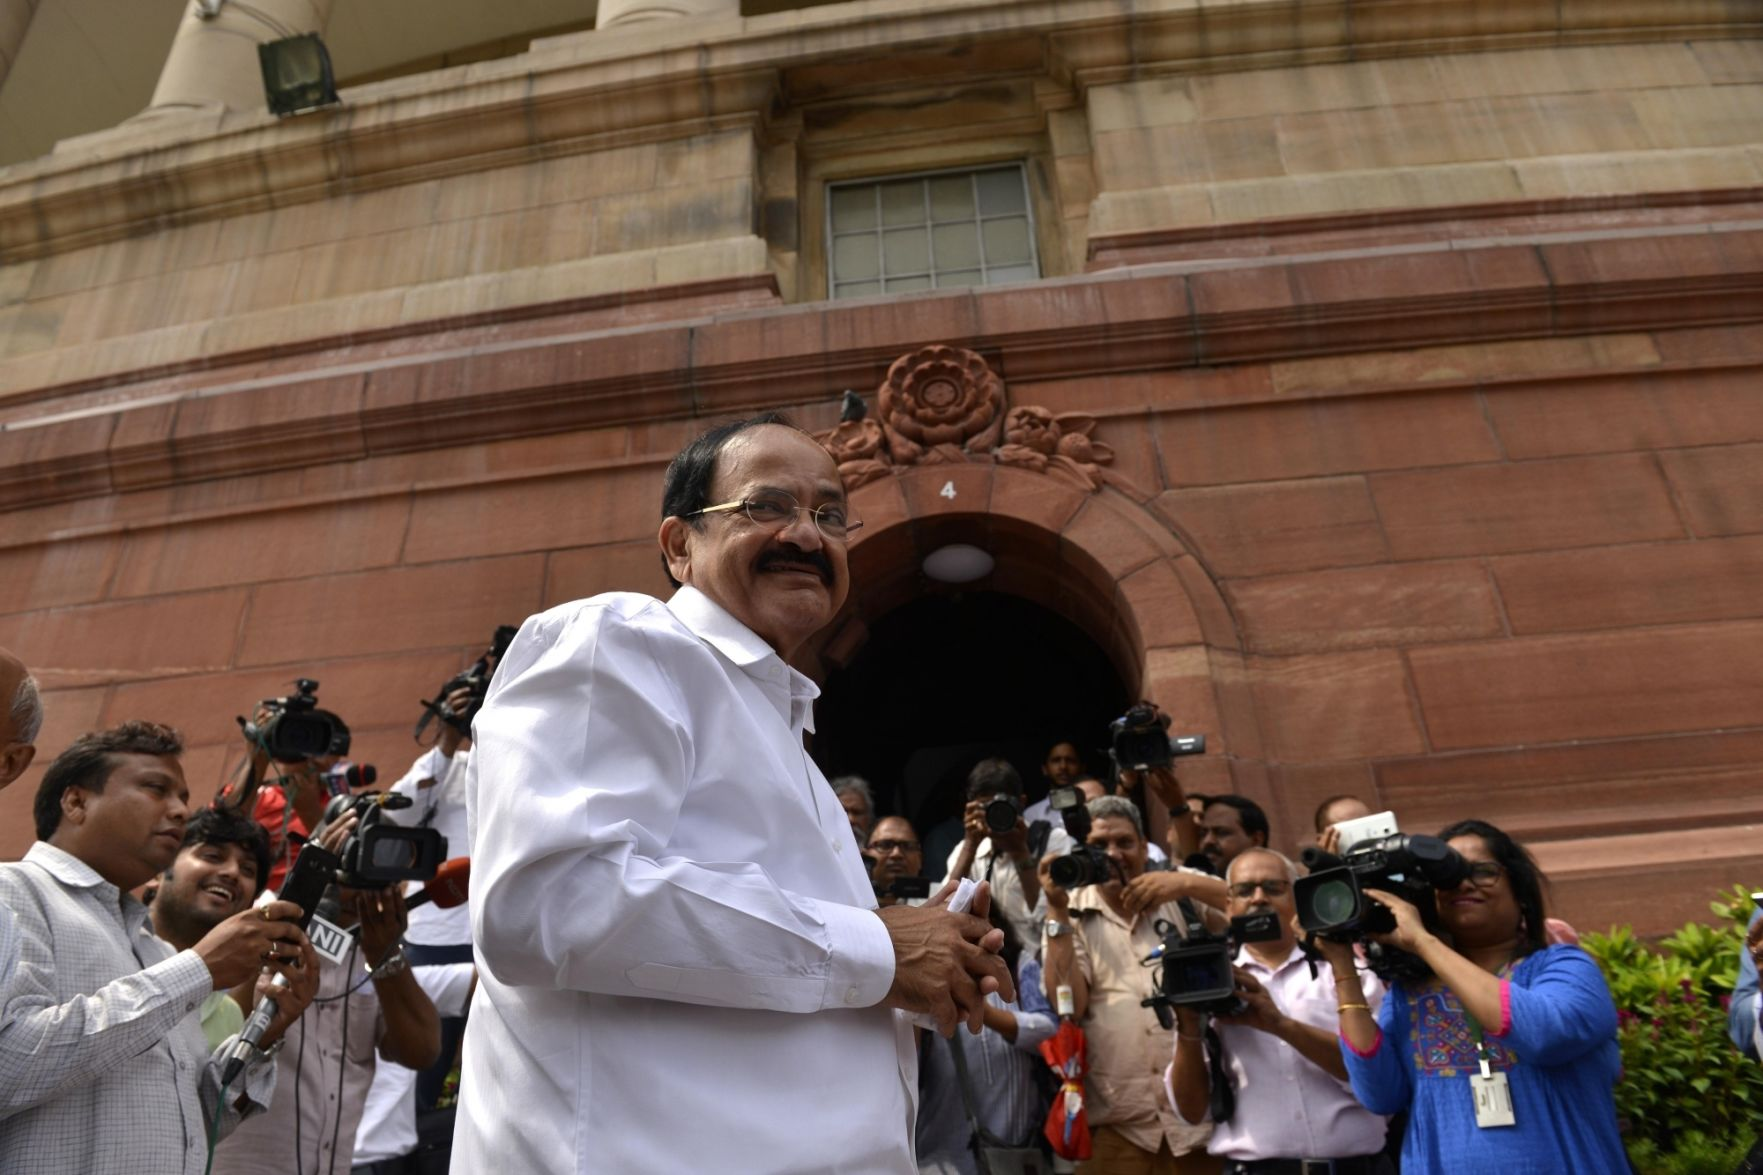 Venkaiah Naidu elected as 13th Vice President of India